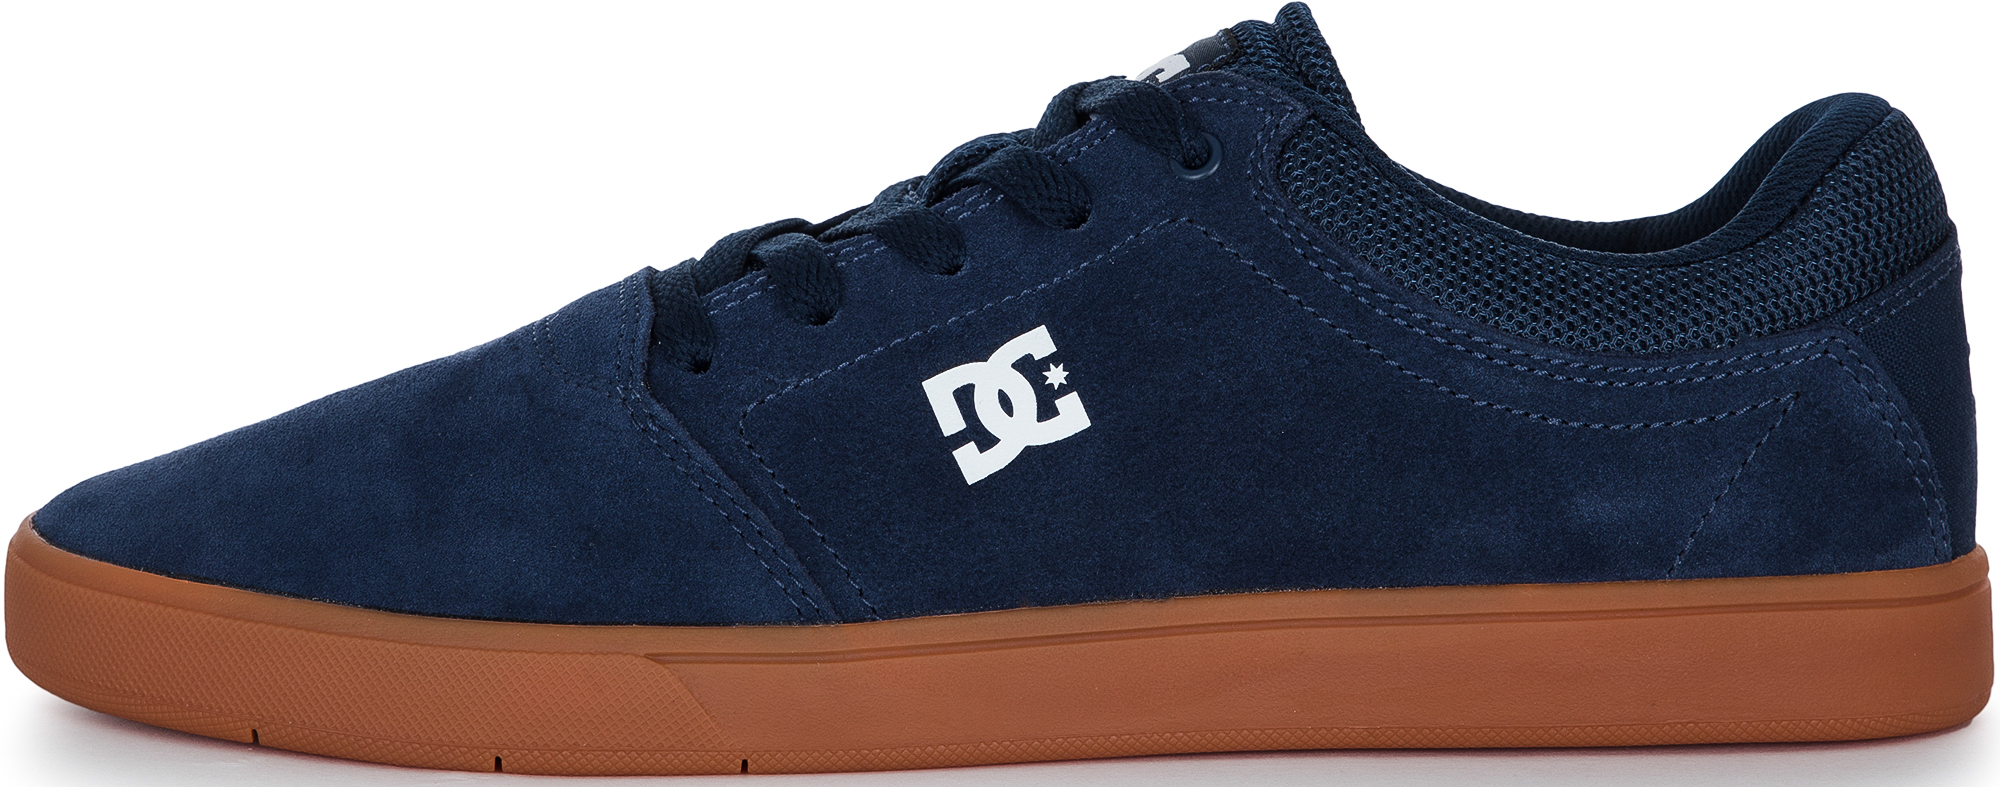 цены DC SHOES Кеды мужские DC SHOES Crisis, размер 43,5